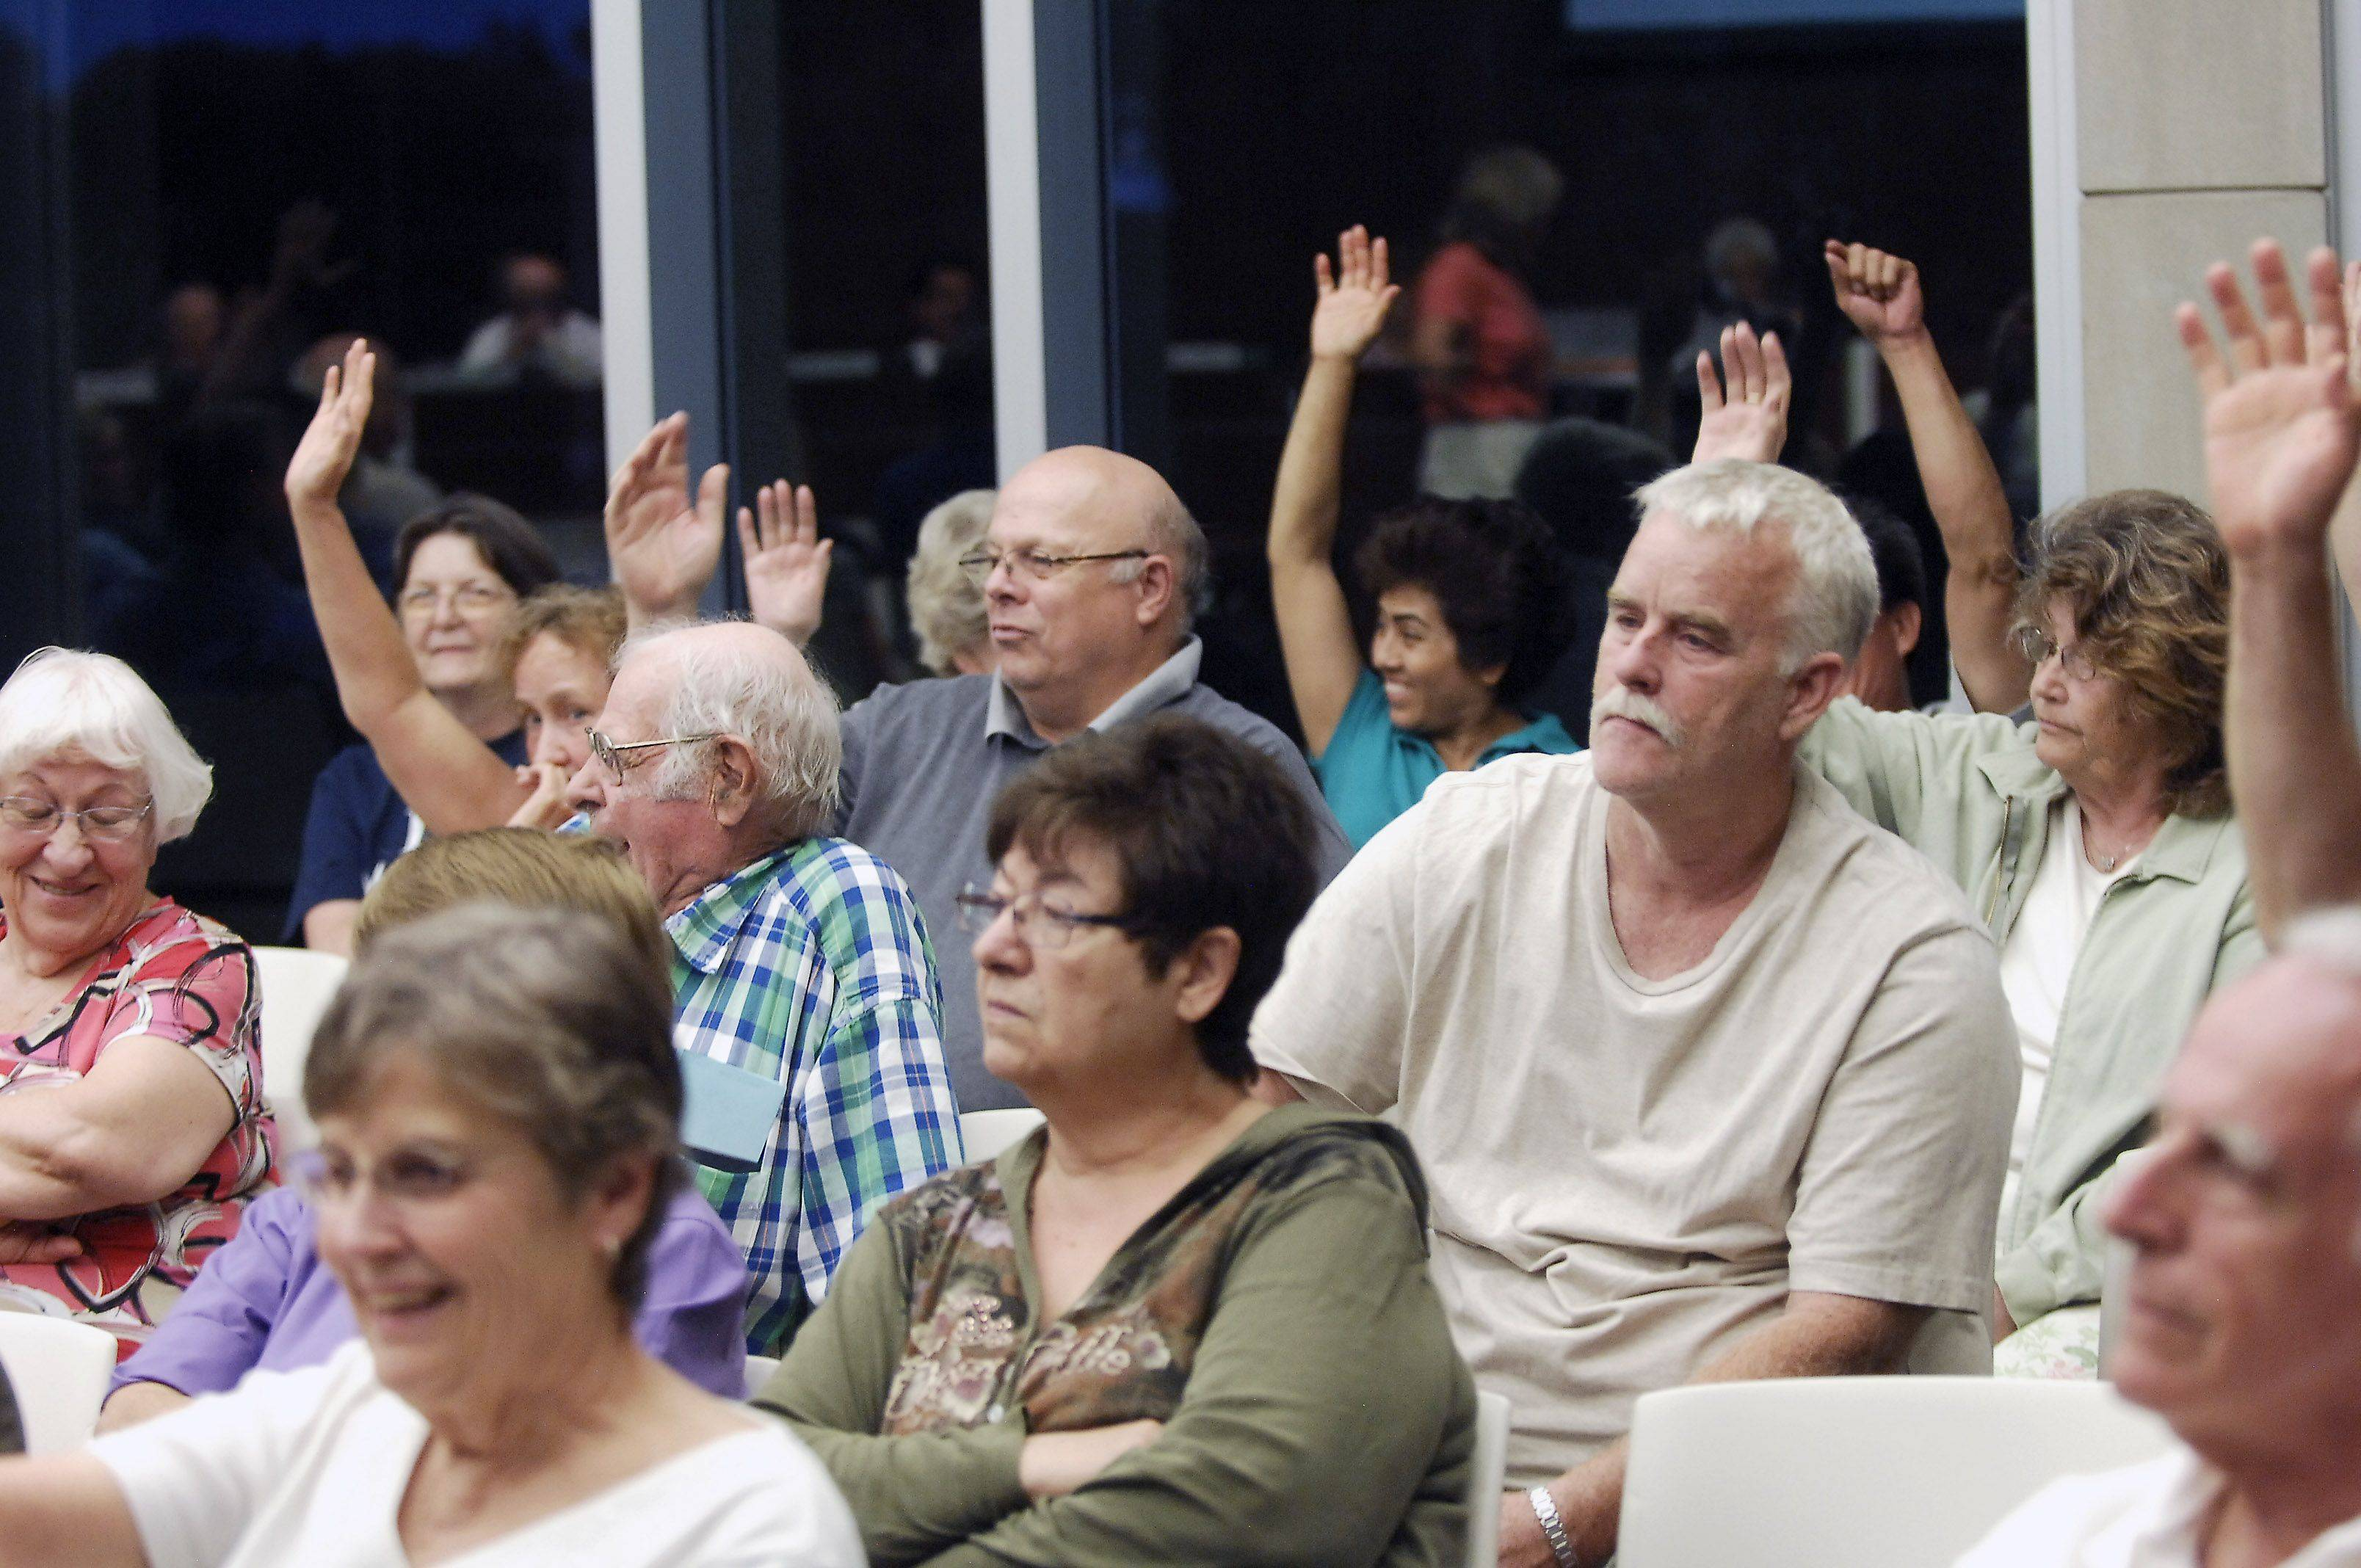 The majority of residents at the village board meeting Monday night in Wheeling raise their hands when asked if they live in the Valley Stream neighborhood.